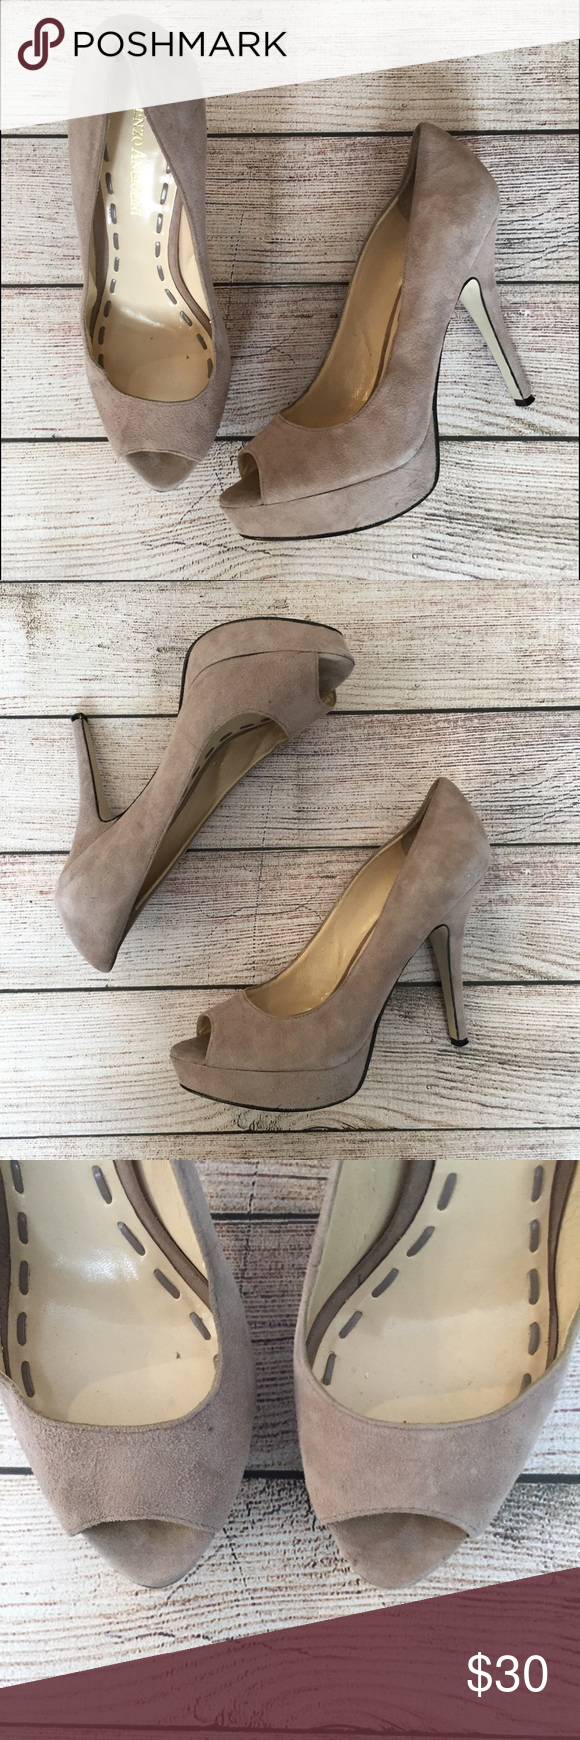 """Enzo Angiolini Peep Toe Pumps 5"""" heel with 1"""" platform. Gently worn, still in great condition NO TRADES/NO MODELING✅BUNDLE TO SAVE✅ Enzo Angiolini Shoes Heels"""